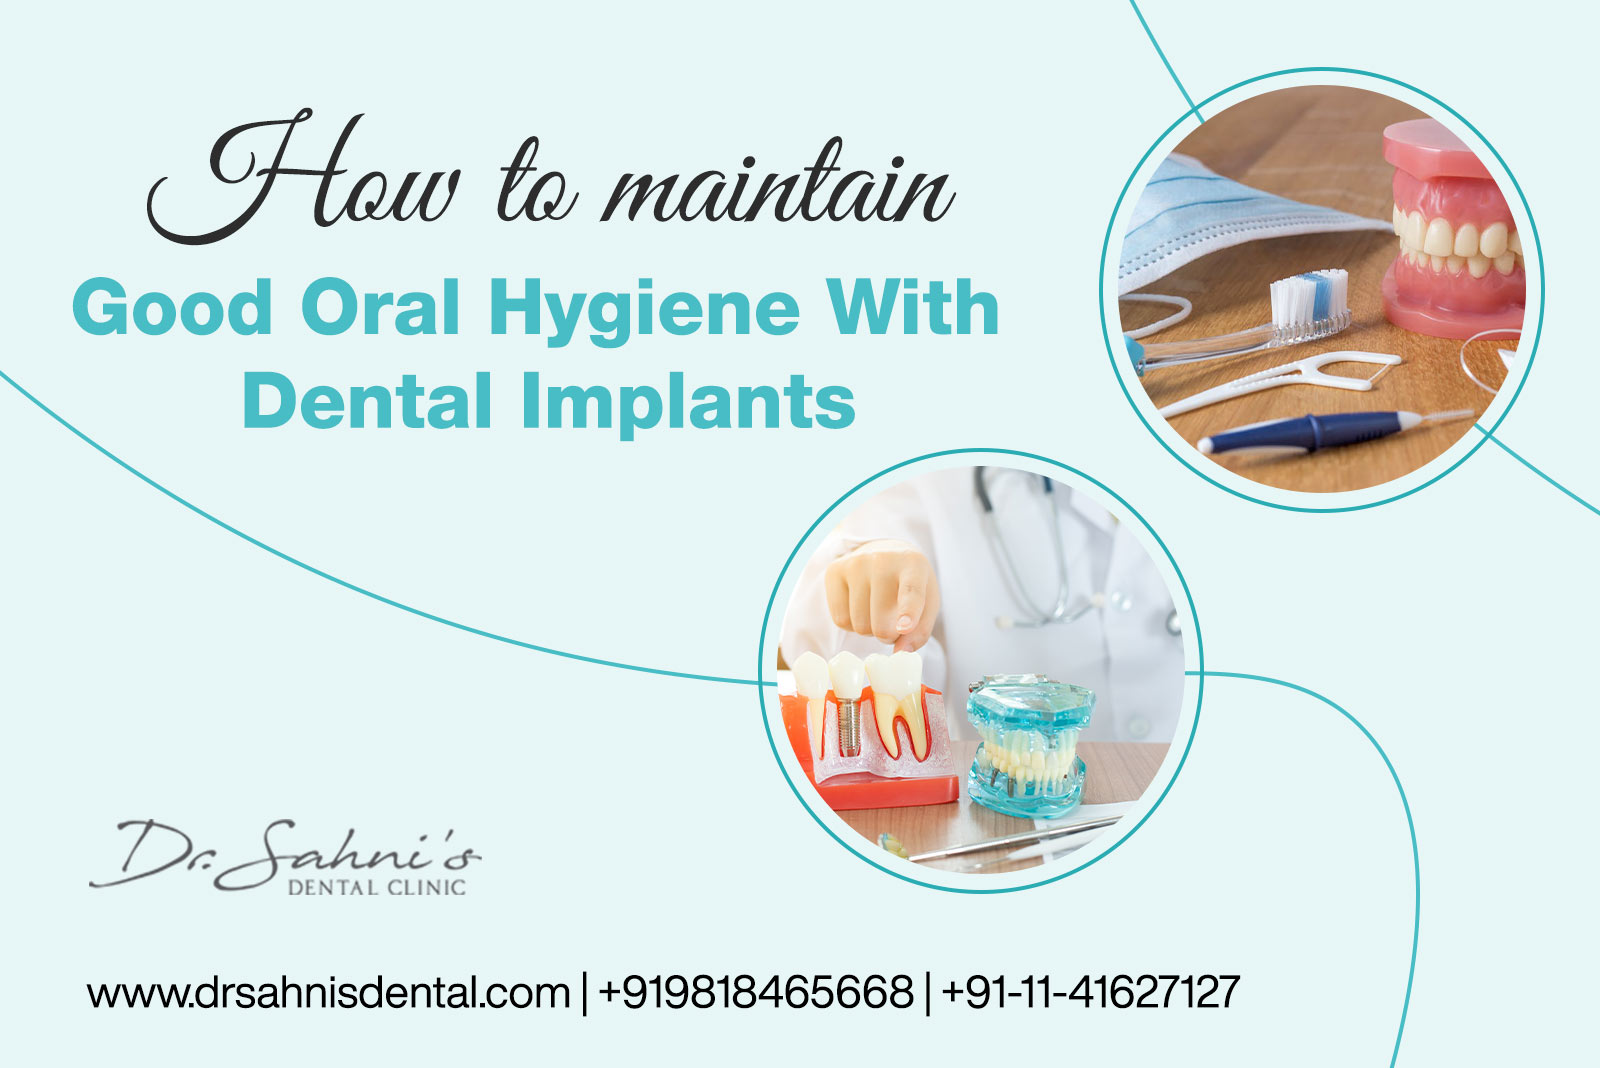 Oral Hygiene With Dental Implants